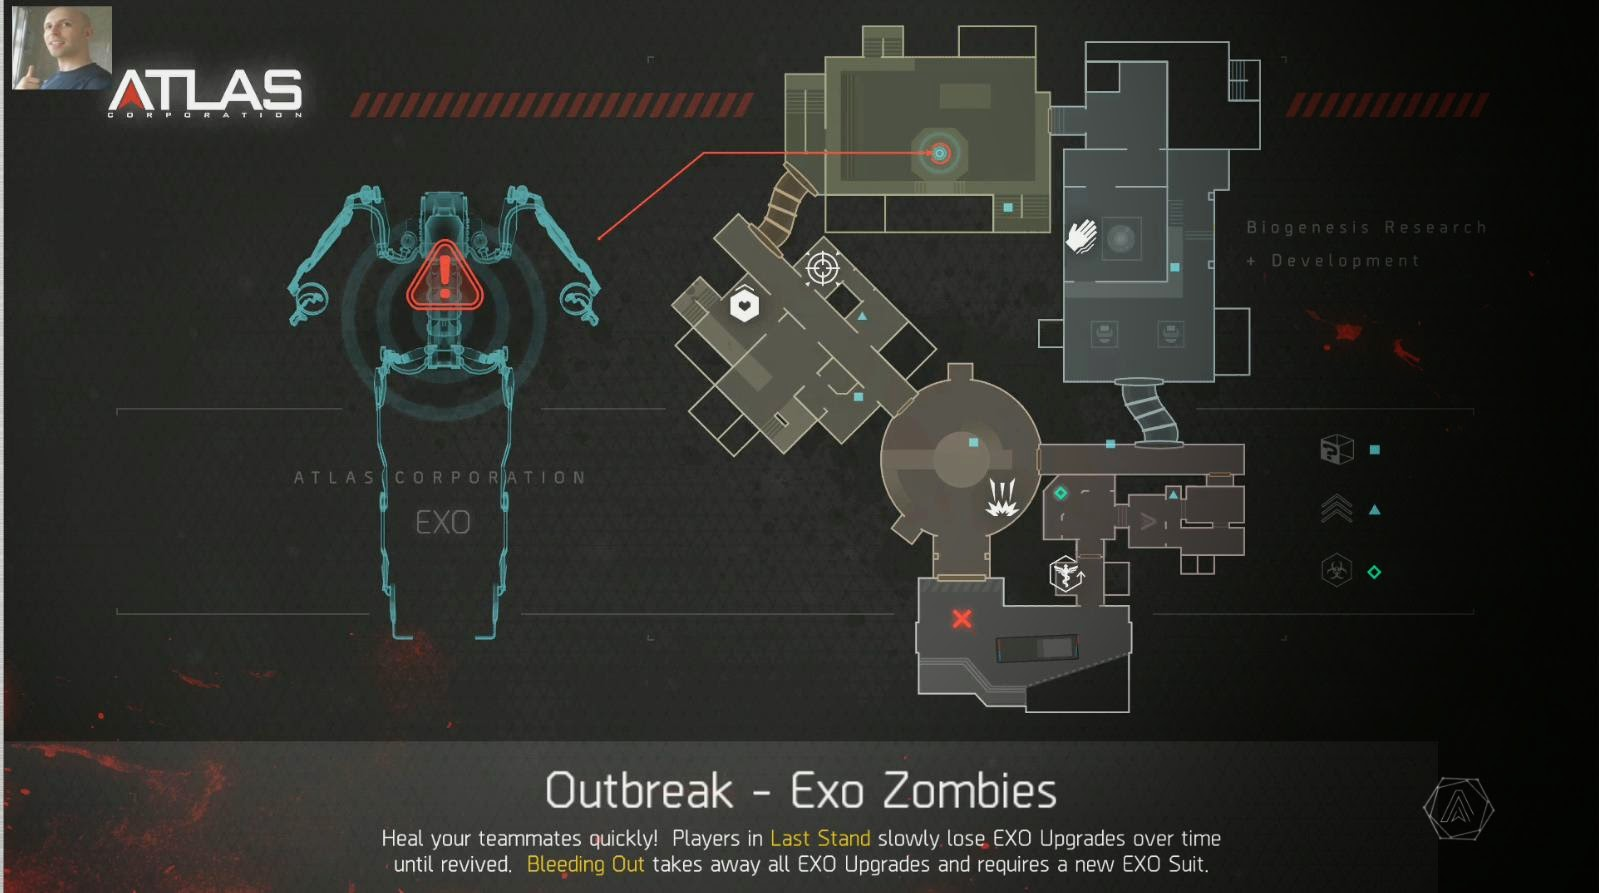 exo%2Bzombies%2Bhavoc%2Bdlc%2Batlas%2Bpic1 How To Get World At War Zombie Maps on left 4 dead zombie maps, world war 3 map, modern warfare 3 zombie maps, bo1 zombie maps, call duty world war maps, world war 1 nazi zombies, cod waw maps, red dead redemption zombie maps, call of duty zombie maps, name of all zombie maps, nazi zombie maps, real zombie maps, minecraft zombie maps, customcod zombie maps, cod zombie maps, bo2 zombie maps, mw3 zombie maps, zombie game maps, custom zombie maps, halo zombie maps,